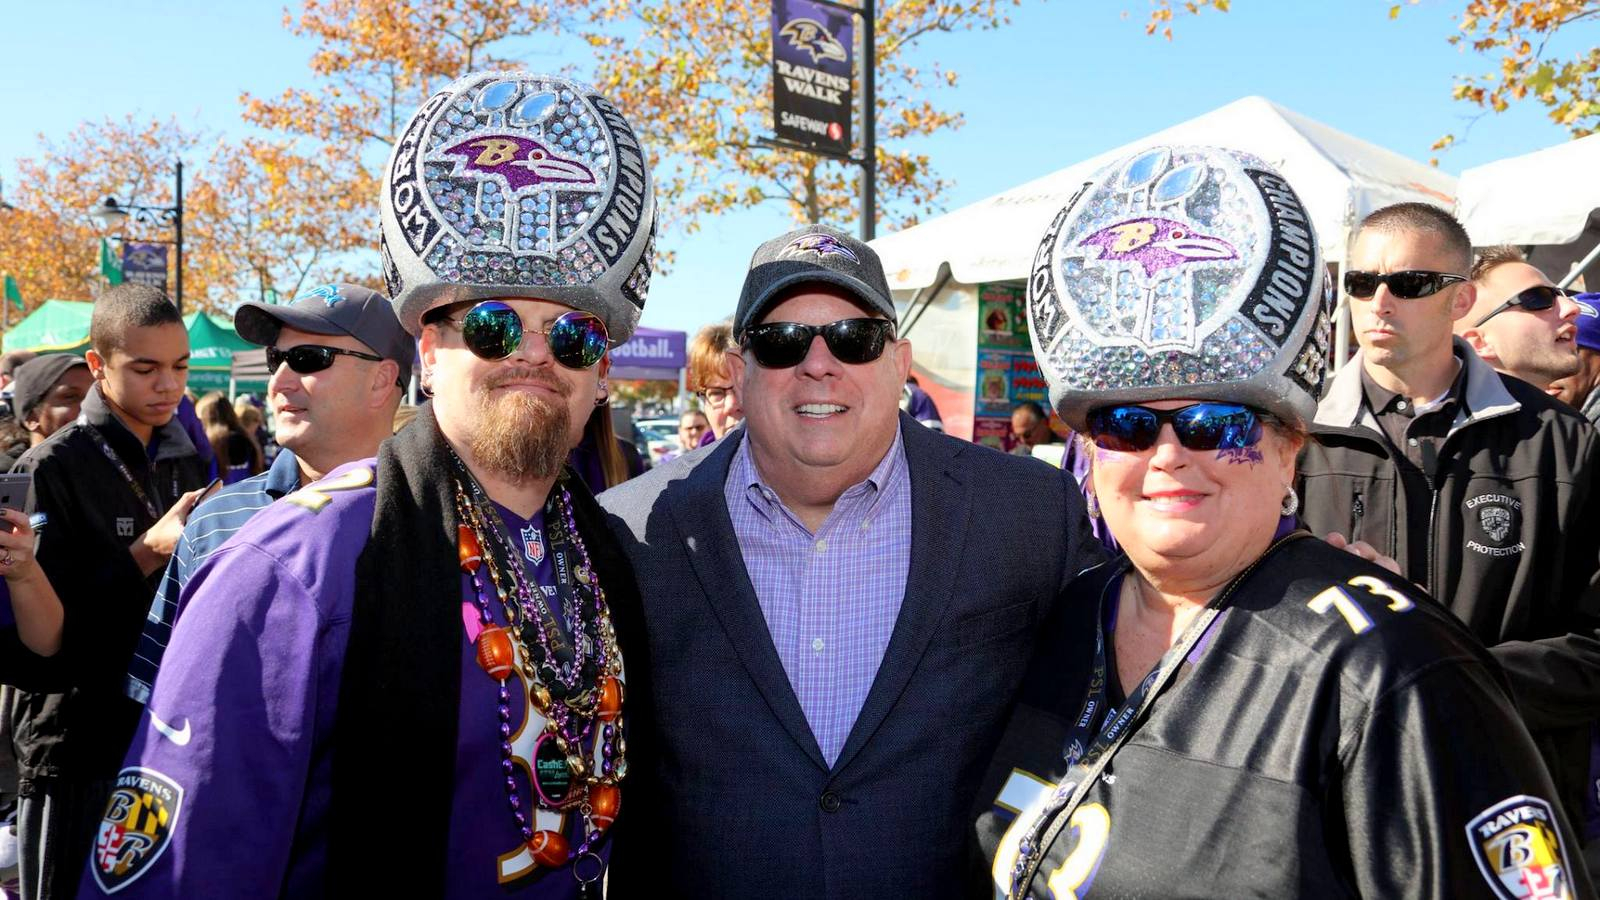 Larry Hogan worked the Ravens fans at last Sunday's Steeler's game. (Larry Hogan Facebook)